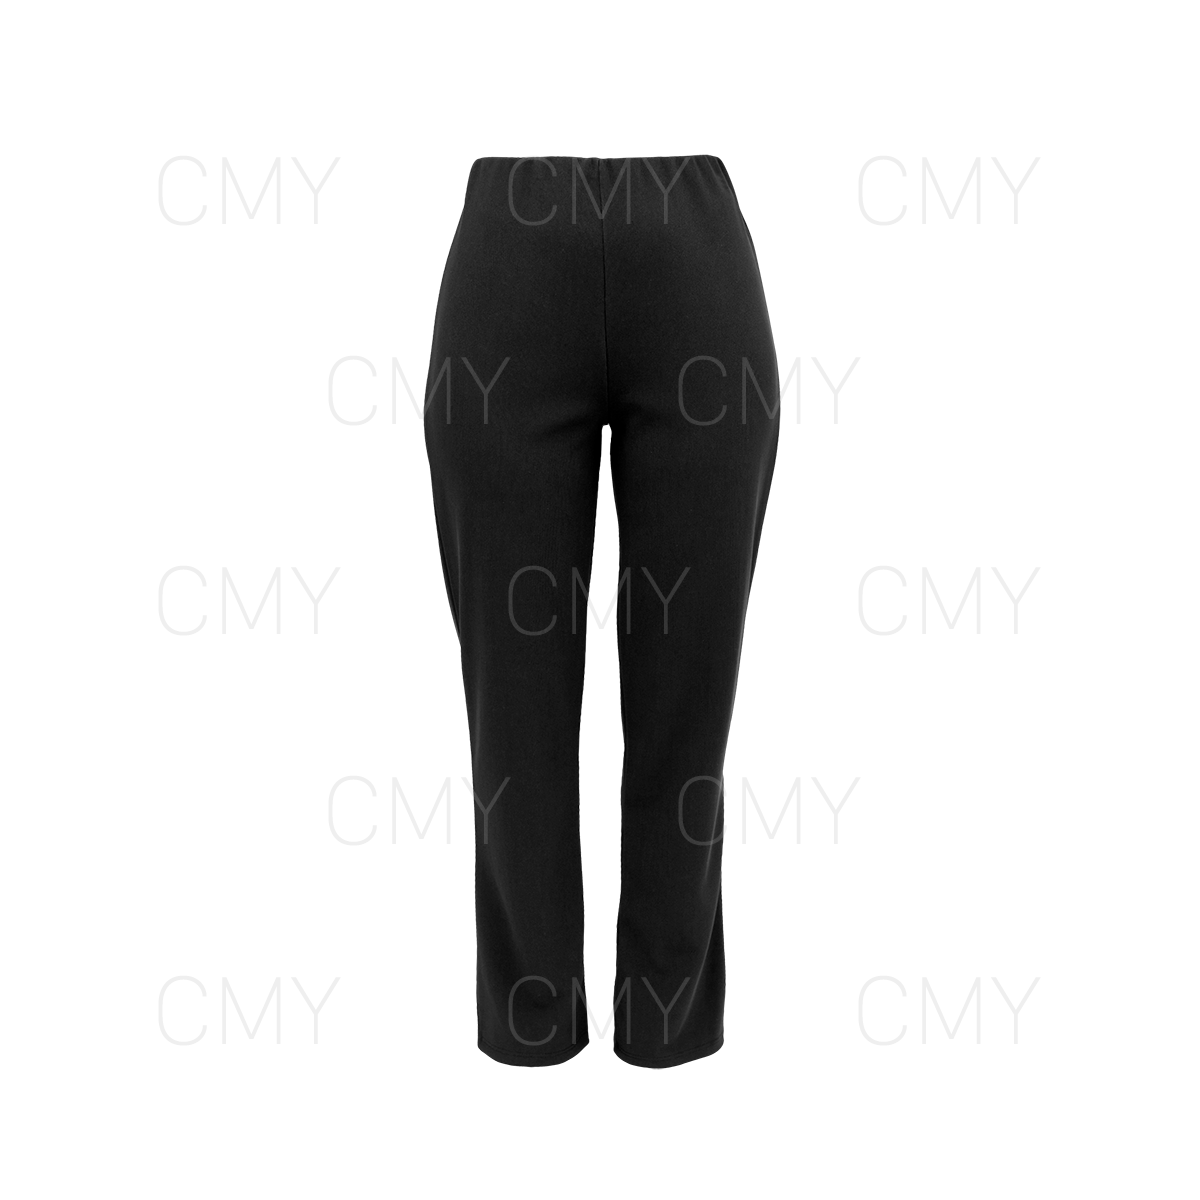 50cb4ad72c5 Womens Trousers Ladies Stretch Finely Ribbed Pants Pull On Bottoms Plus  Sizes 7 7 sur 10 ...